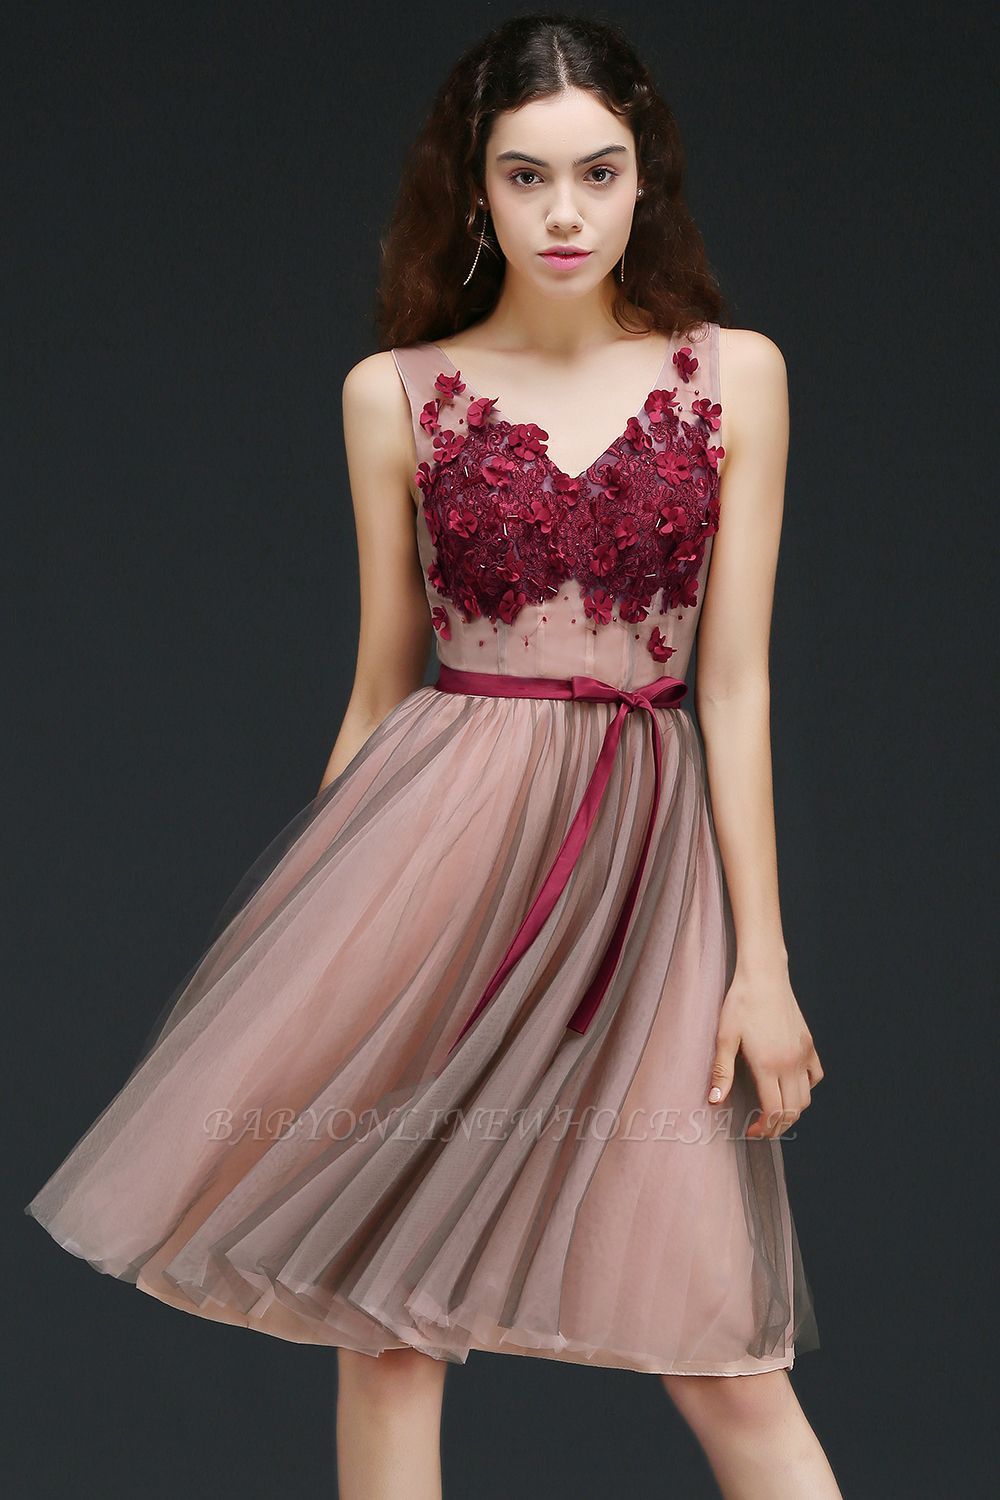 CORALINE |Princess V-neck Knee-length Tulle Homecoming Dress with a Self-tie Belt